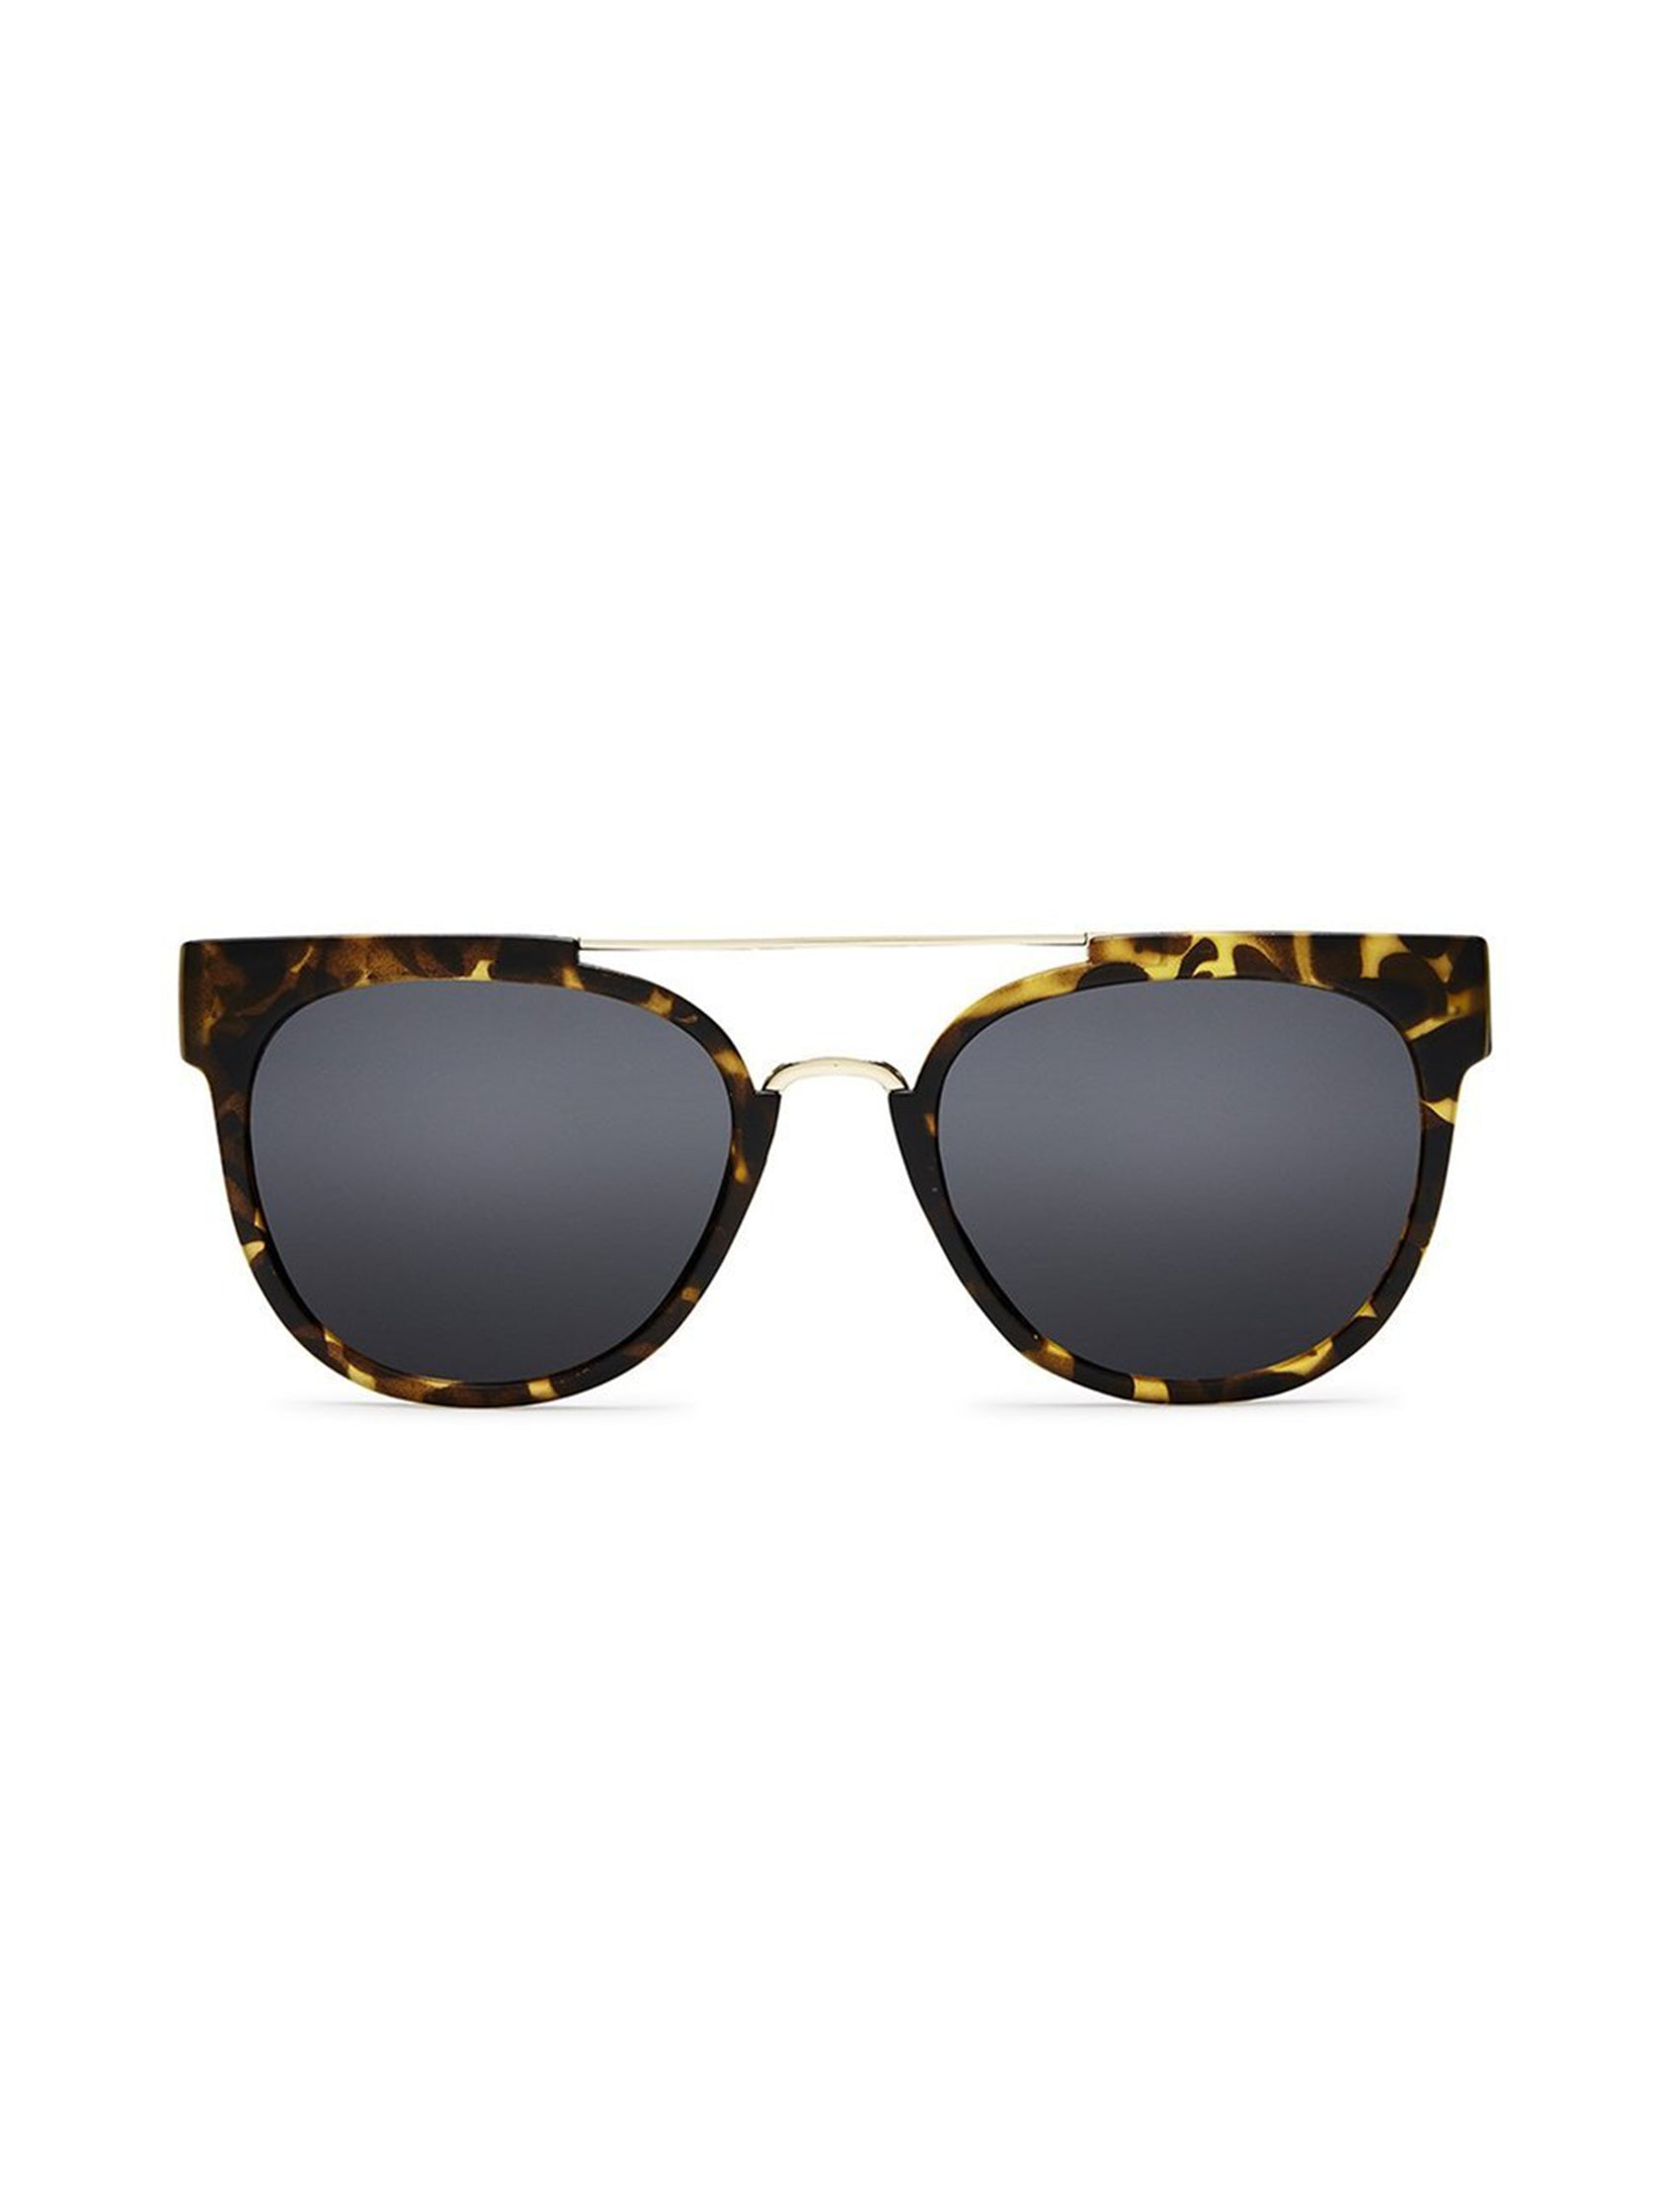 450b1621ed68 Girl outfit in a sunglasses rental from Quay Australia called Odin Tortoise  Sunglasses